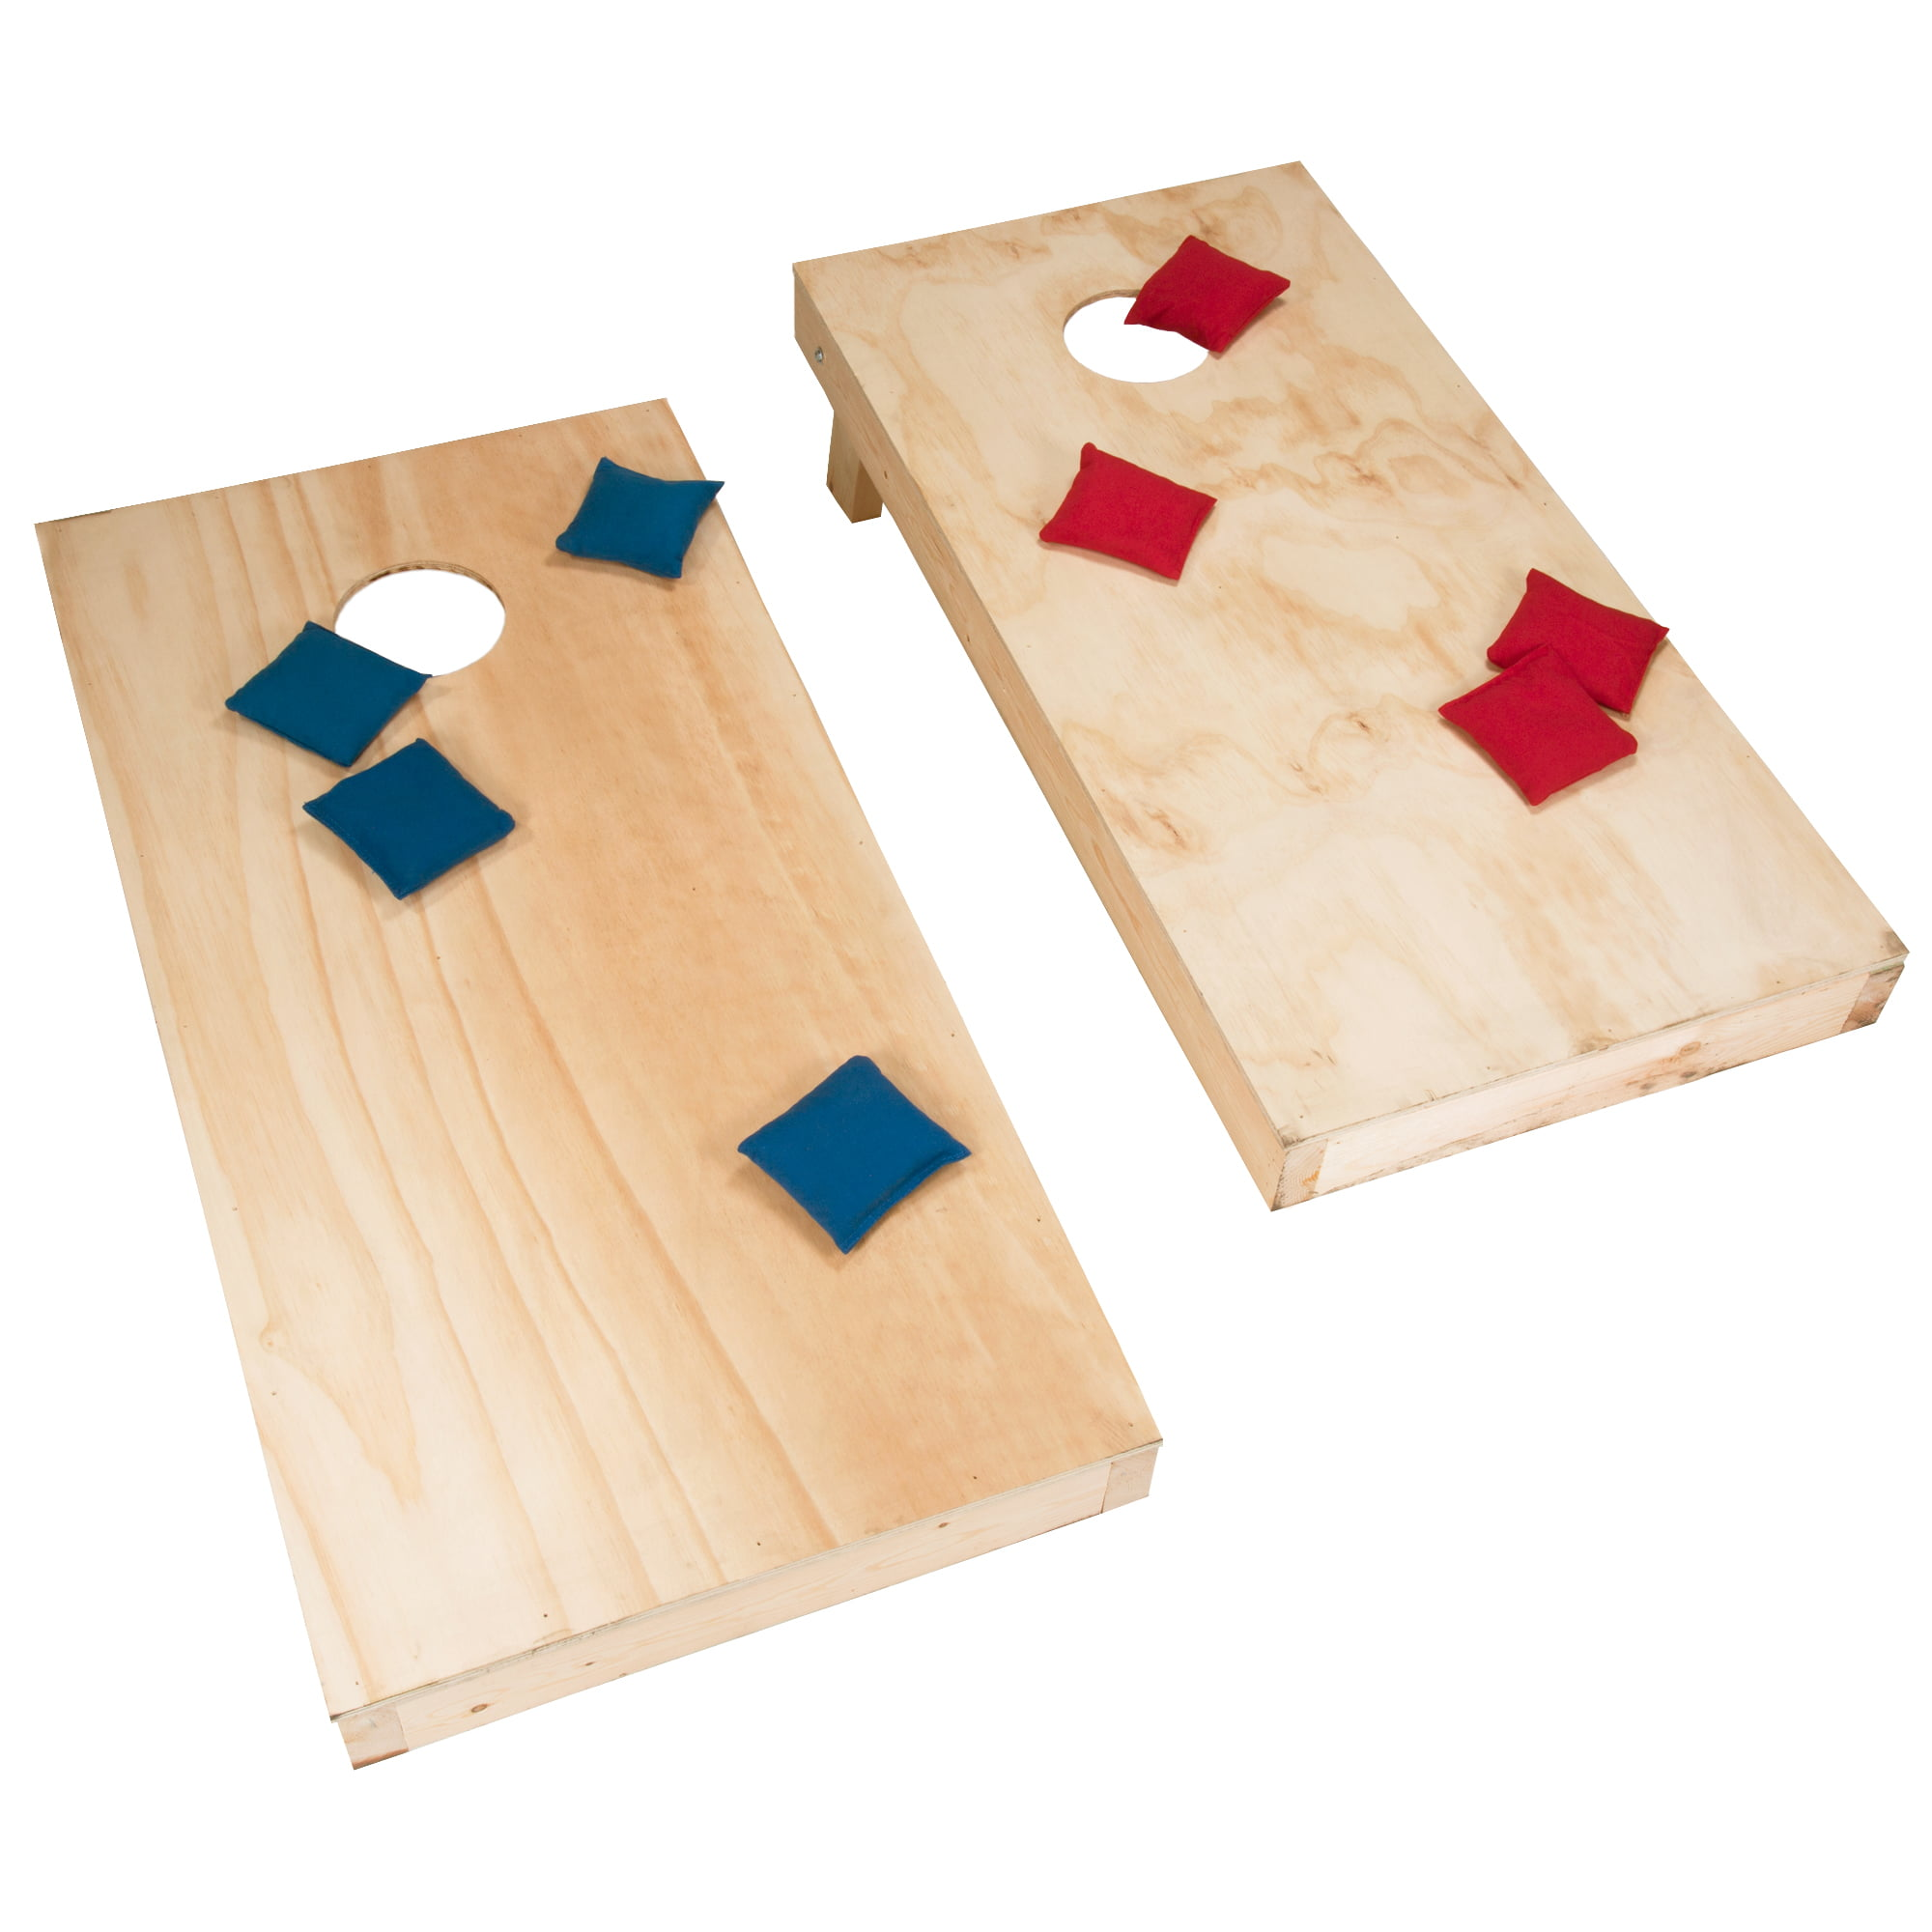 Unfinished Regulation Size Wooden Cornhole Boards and Bags, Beanbag Toss Game by Hey!... by Trademark Global LLC